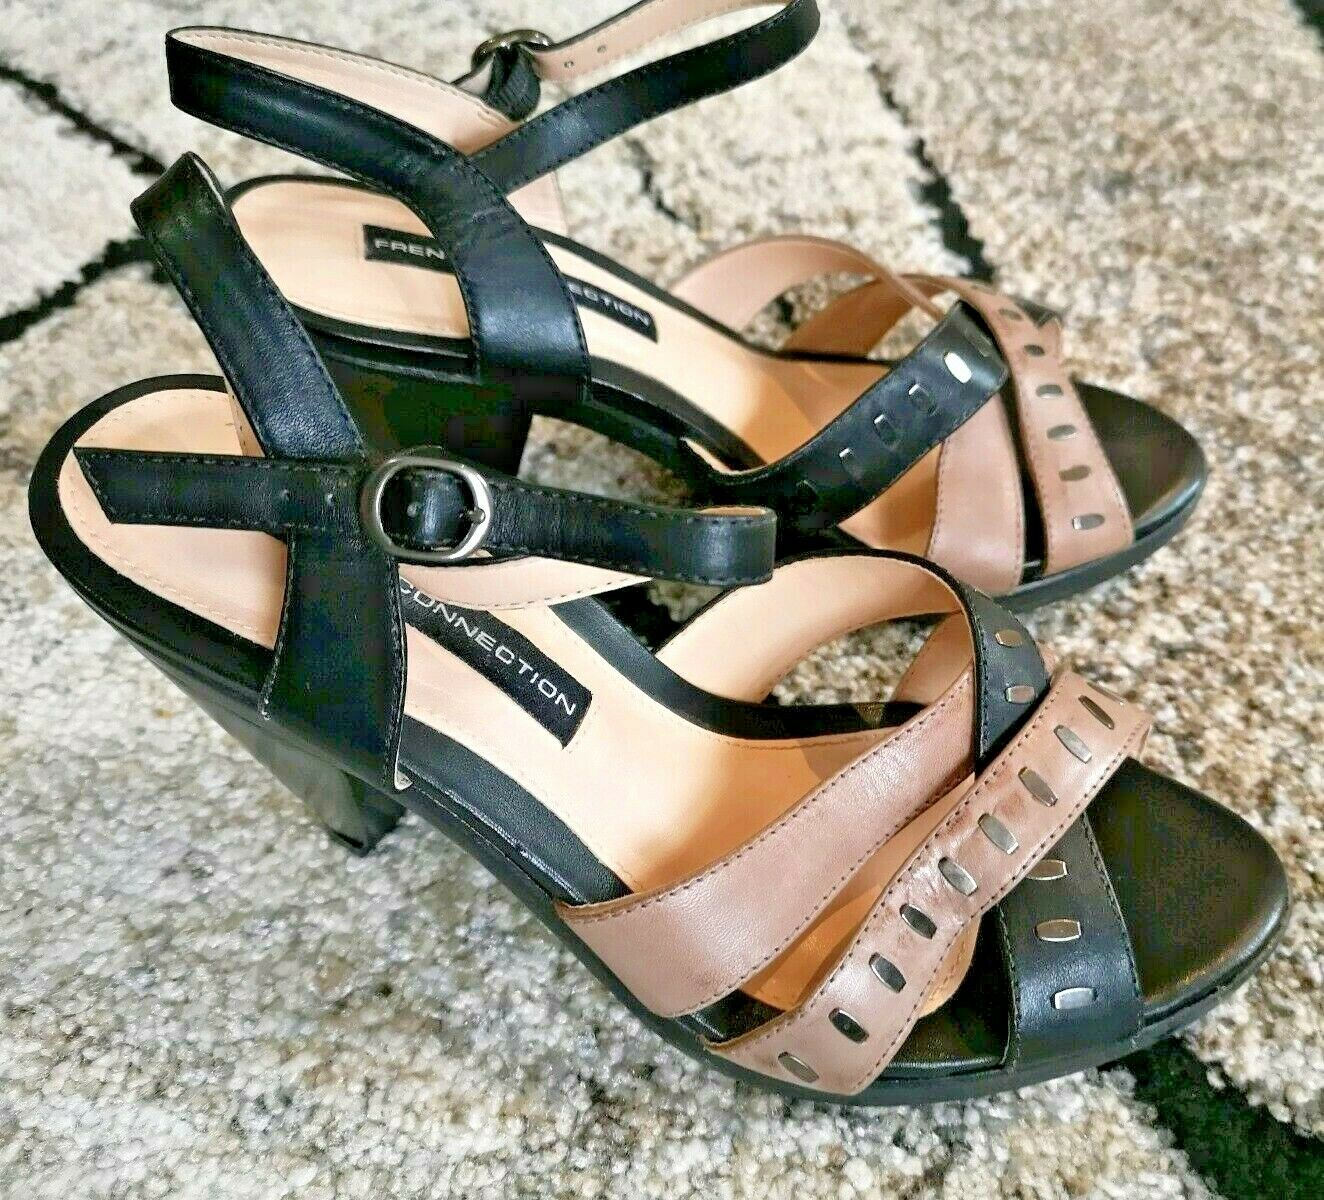 French Connection Heeled Leather Sandals Black & Brown Studded EU 36 UK 4